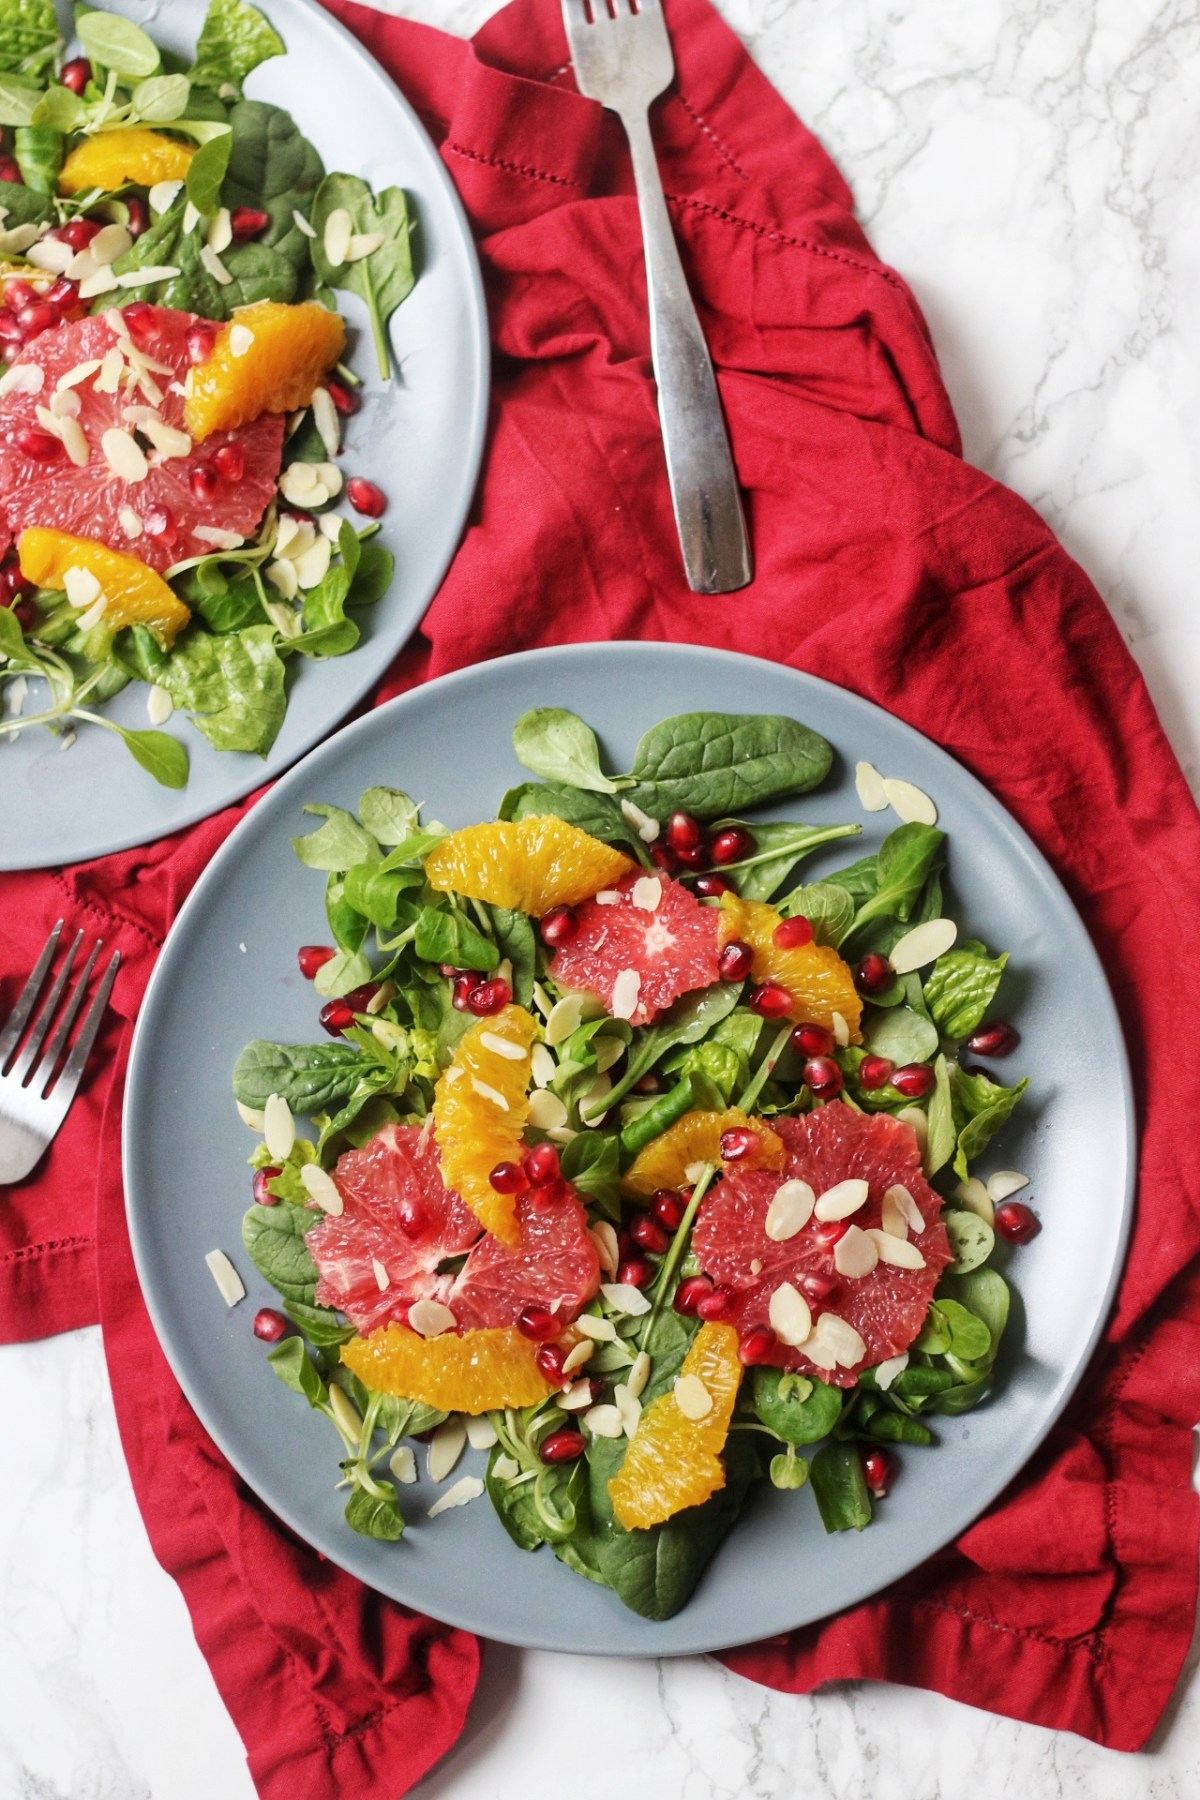 Winter Citrus Salad with orange, grapefruit and pomegranate